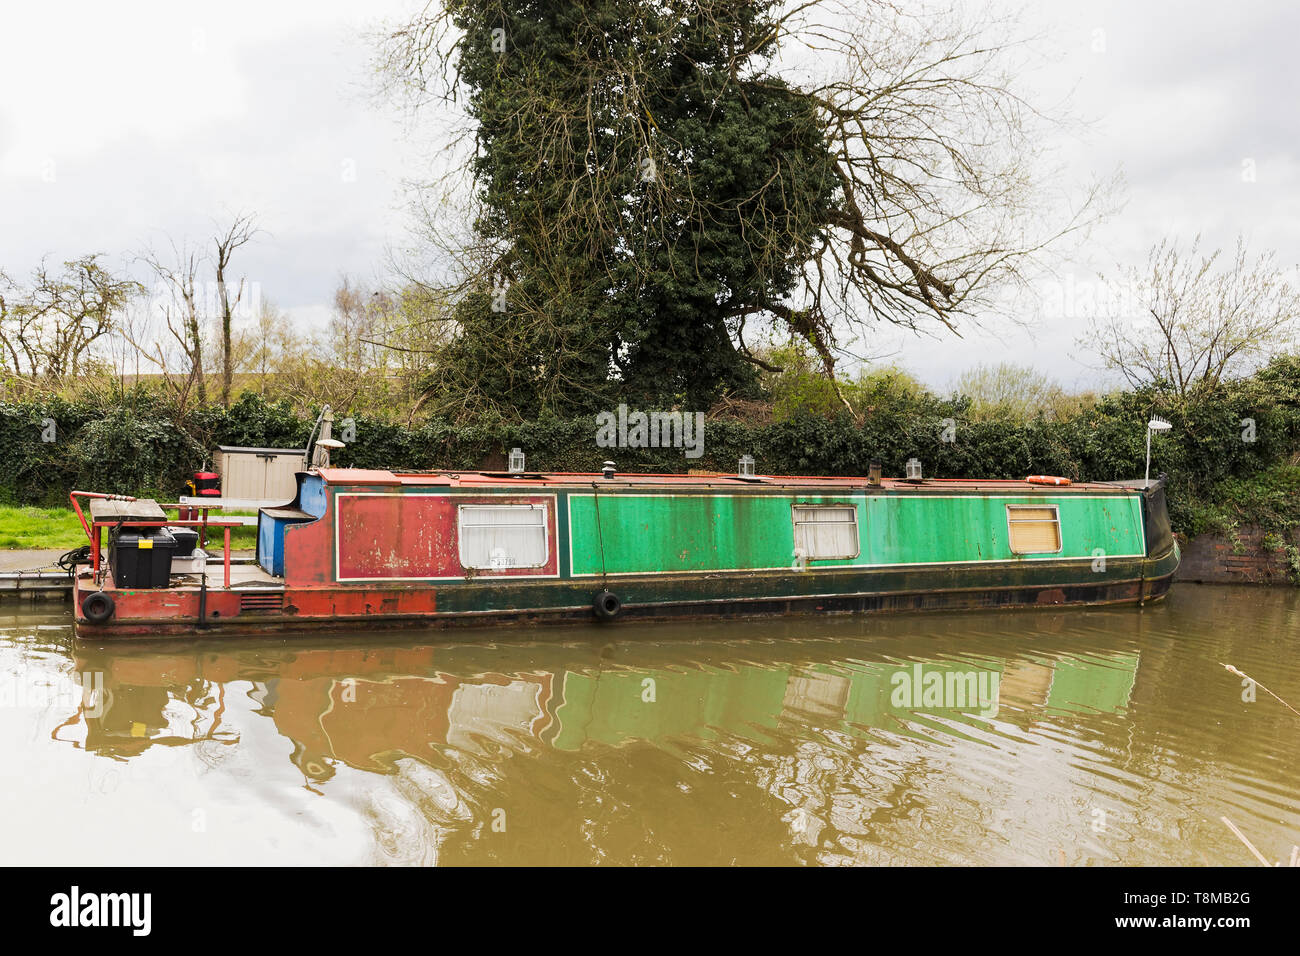 Longboat on a canal at Stratford upon Avon possibly in need of renovation - Stock Image